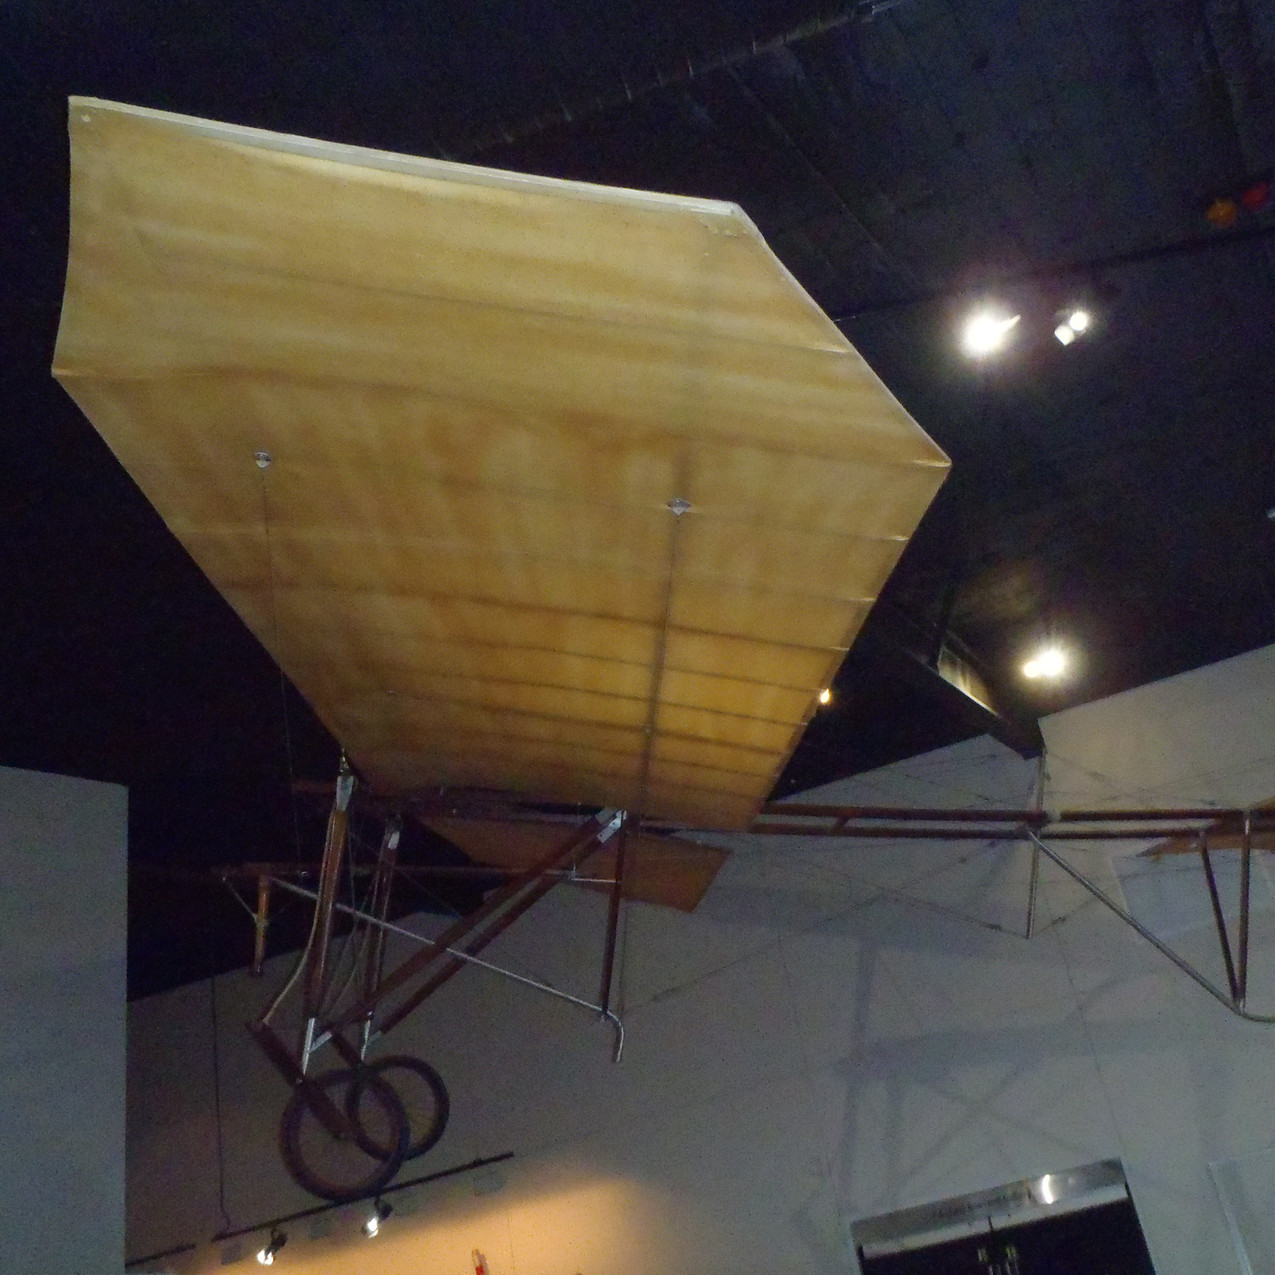 Hinkler's first aircraft